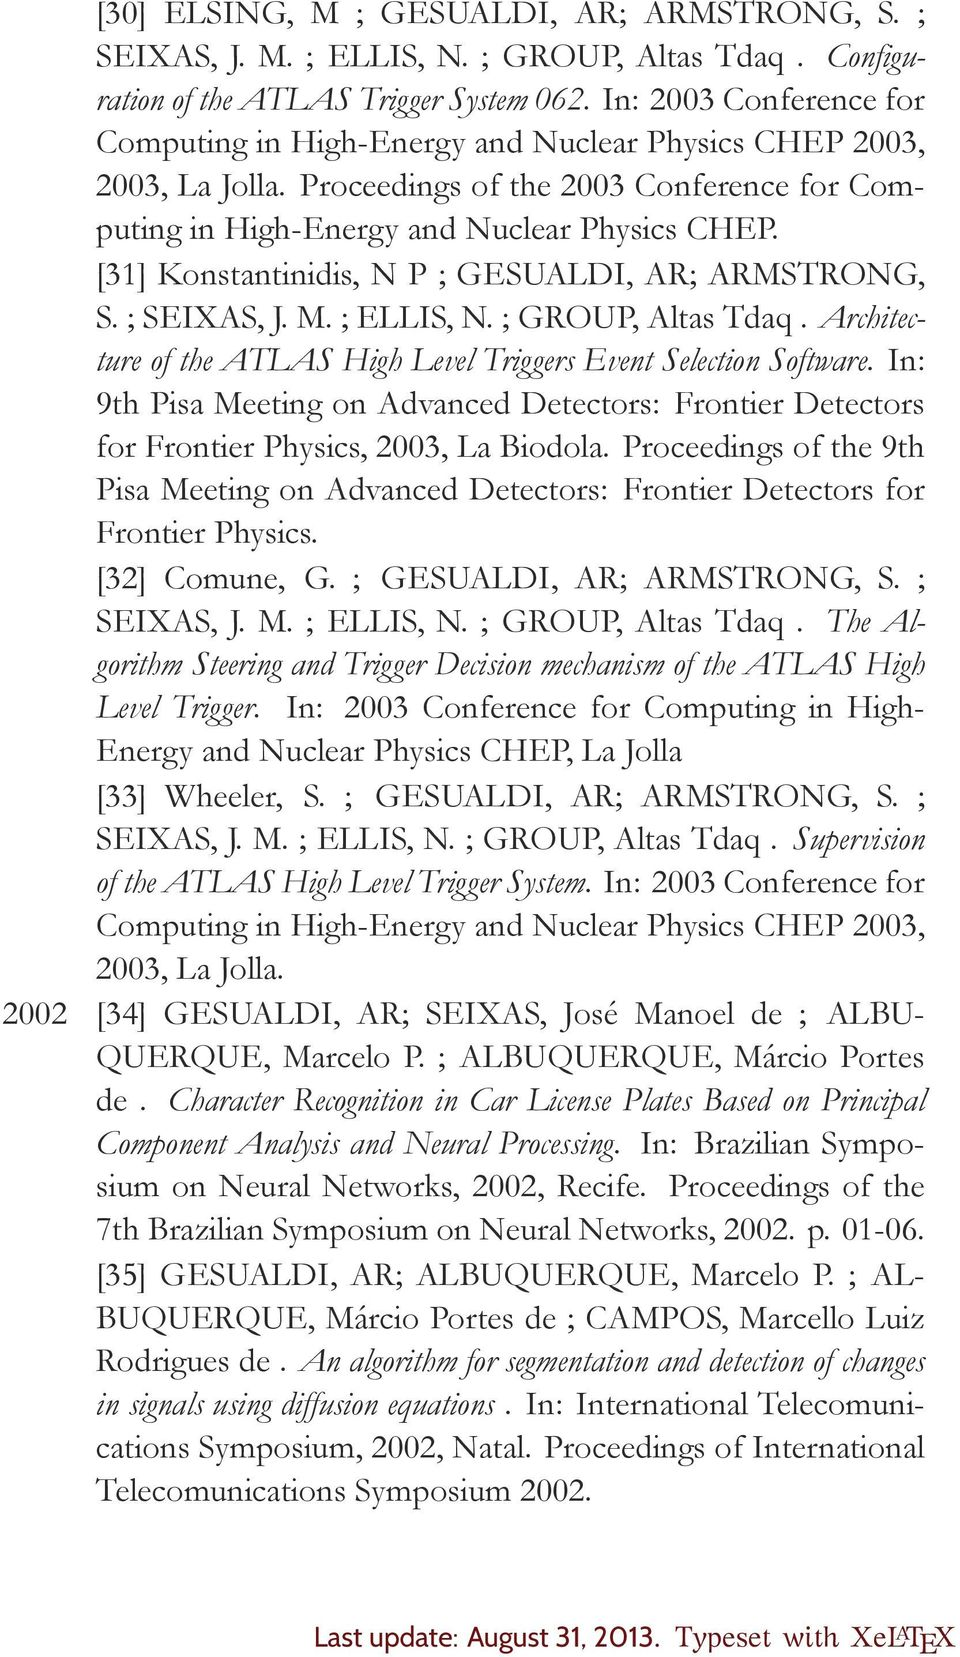 [31] Konstantinidis, N P ; GESUALDI, AR; ARMSTRONG, S. ; SEIXAS, J. M. ; ELLIS, N. ; GROUP, Altas Tdaq. Architecture of the ATLAS High Level Triggers Event Selection Software.